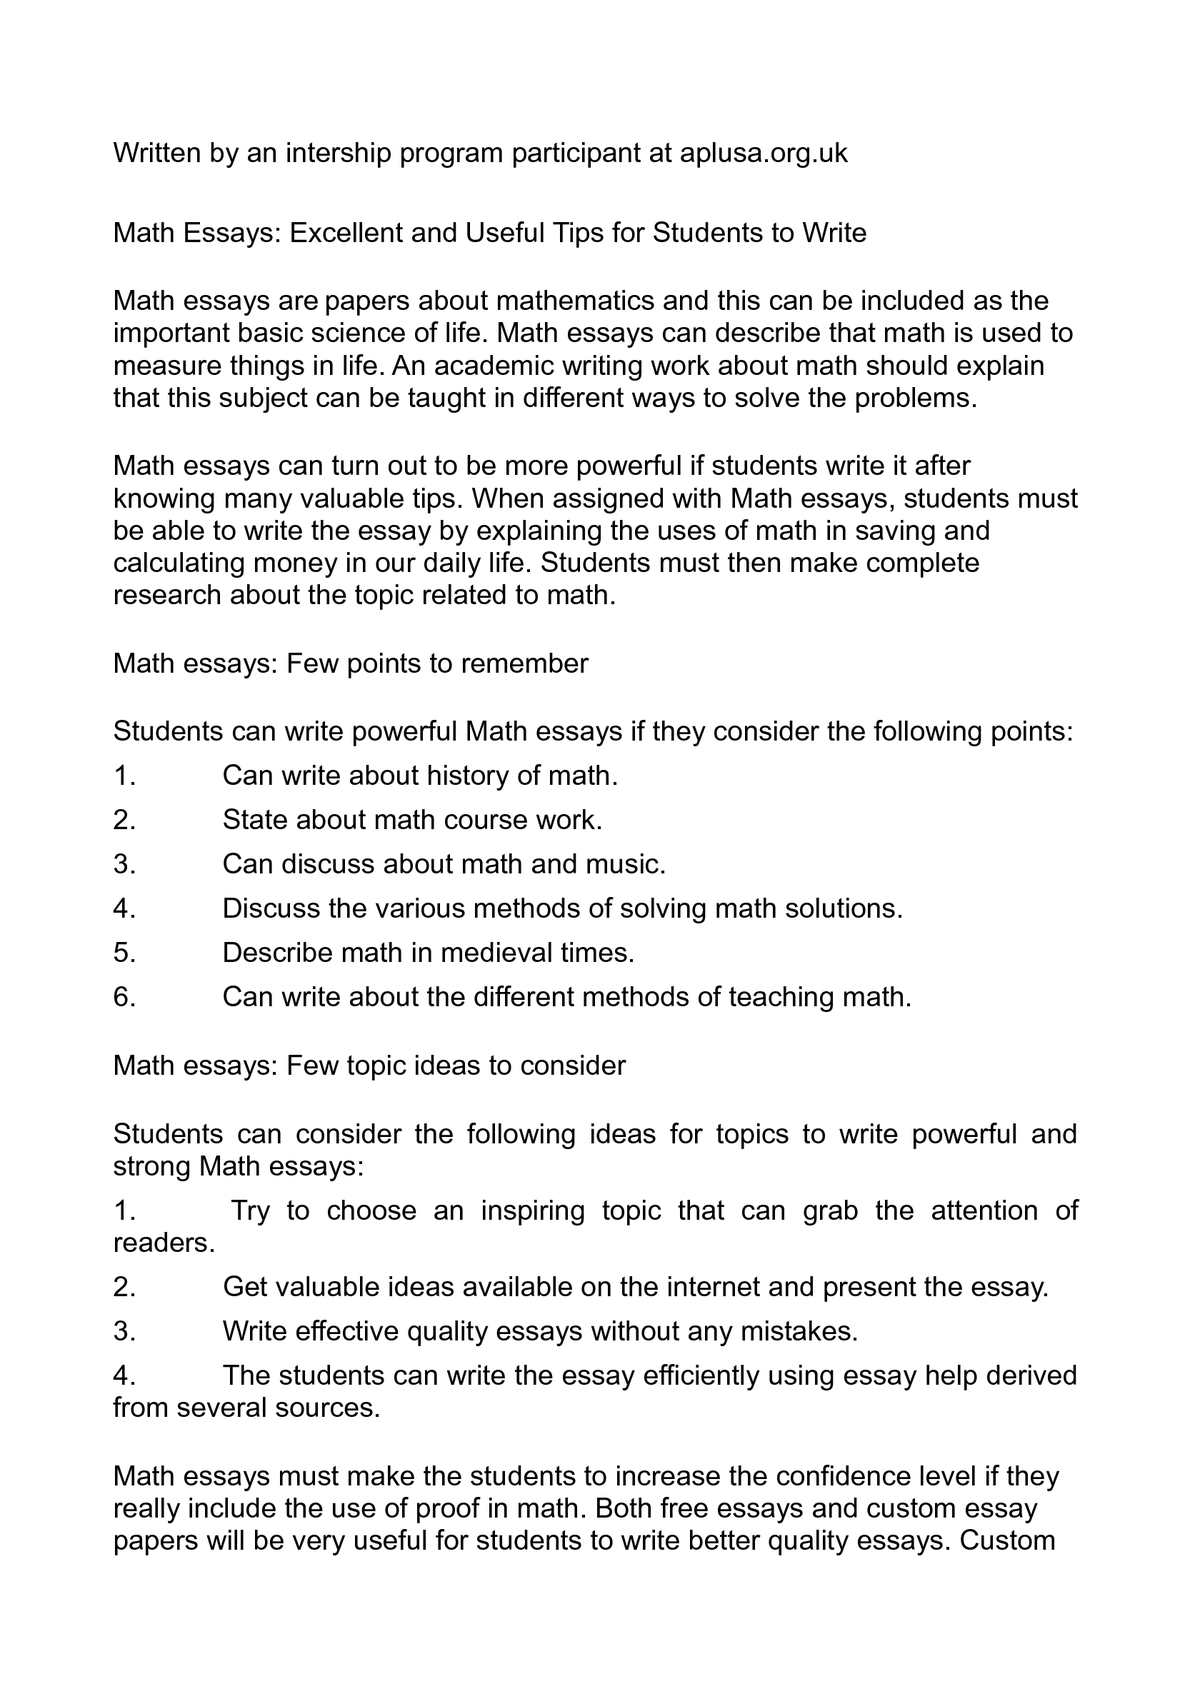 math essays excellent and useful tips for students to write